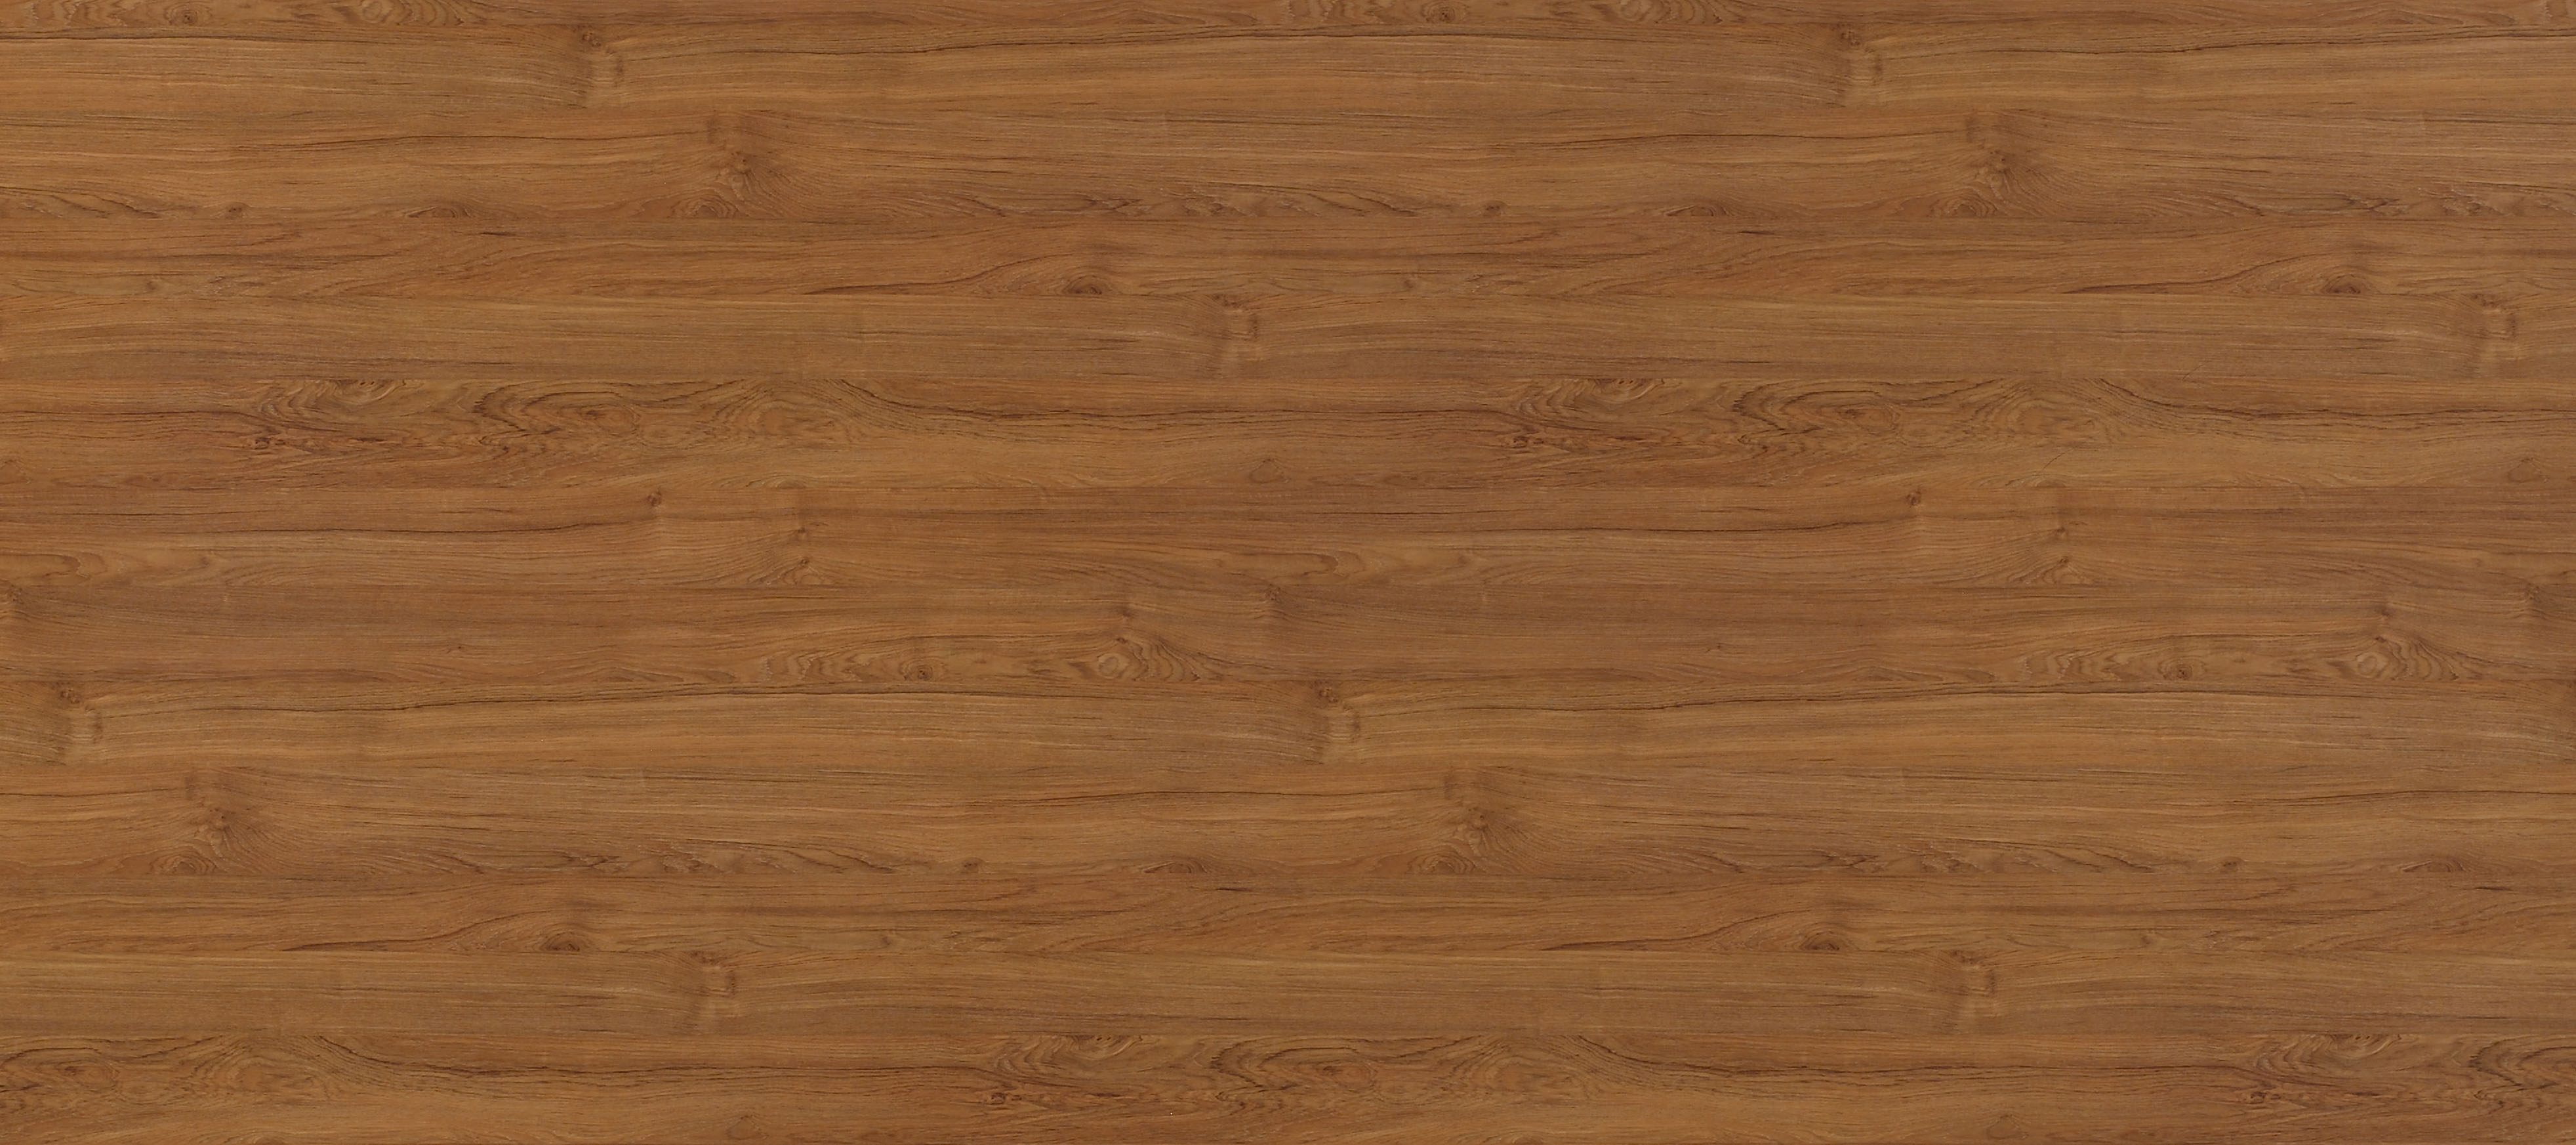 Texture wood free download photo download wood texture background voltagebd Gallery